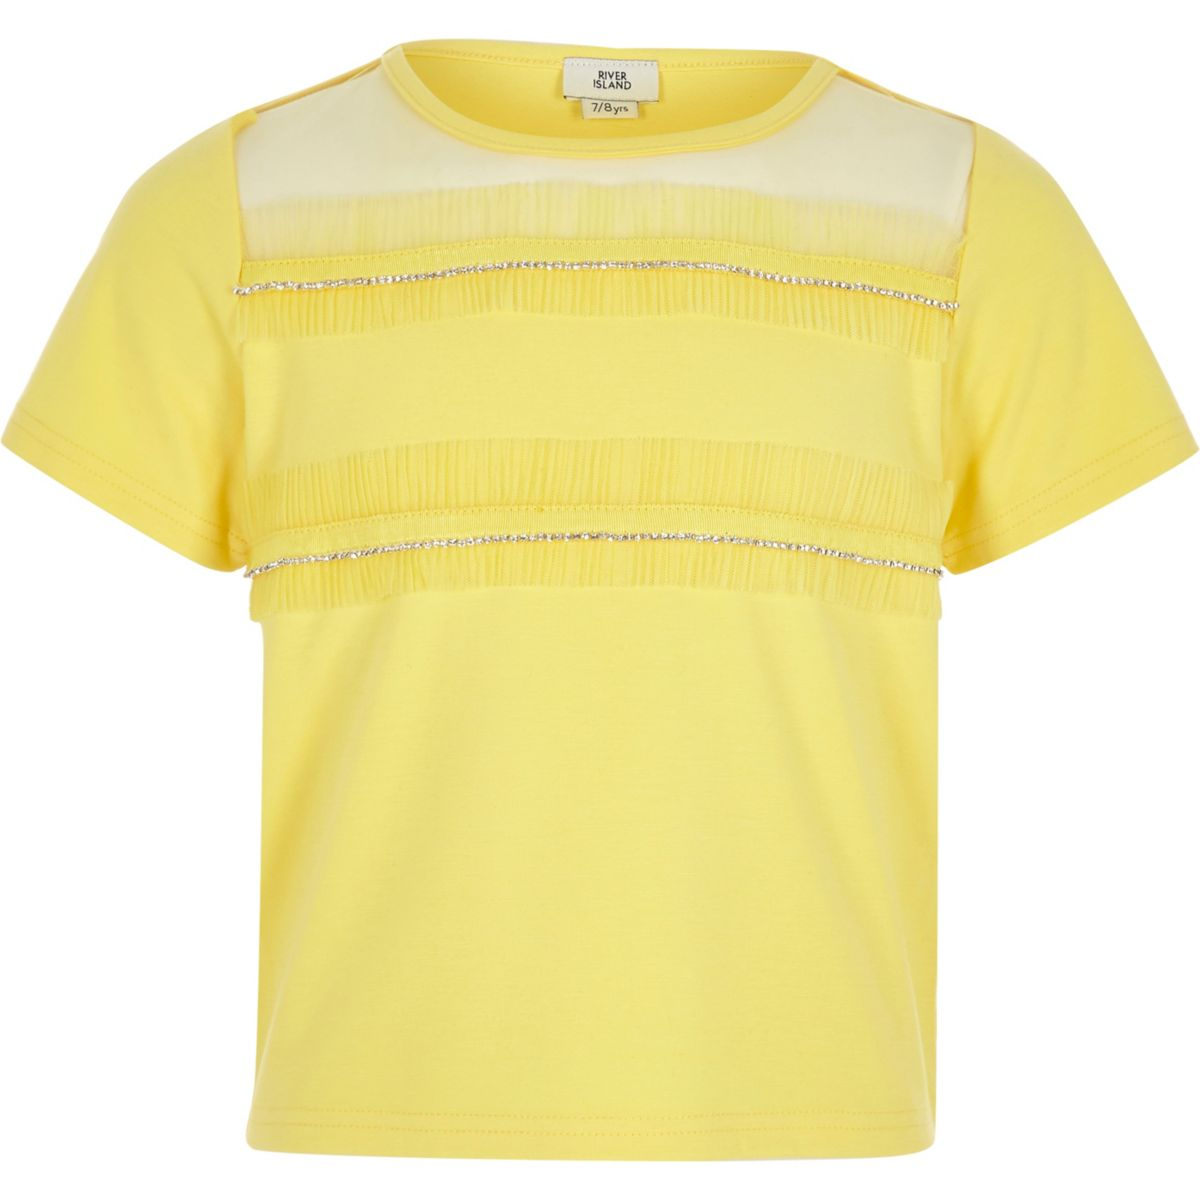 Girls yellow rhinestone mesh trim T-shirt